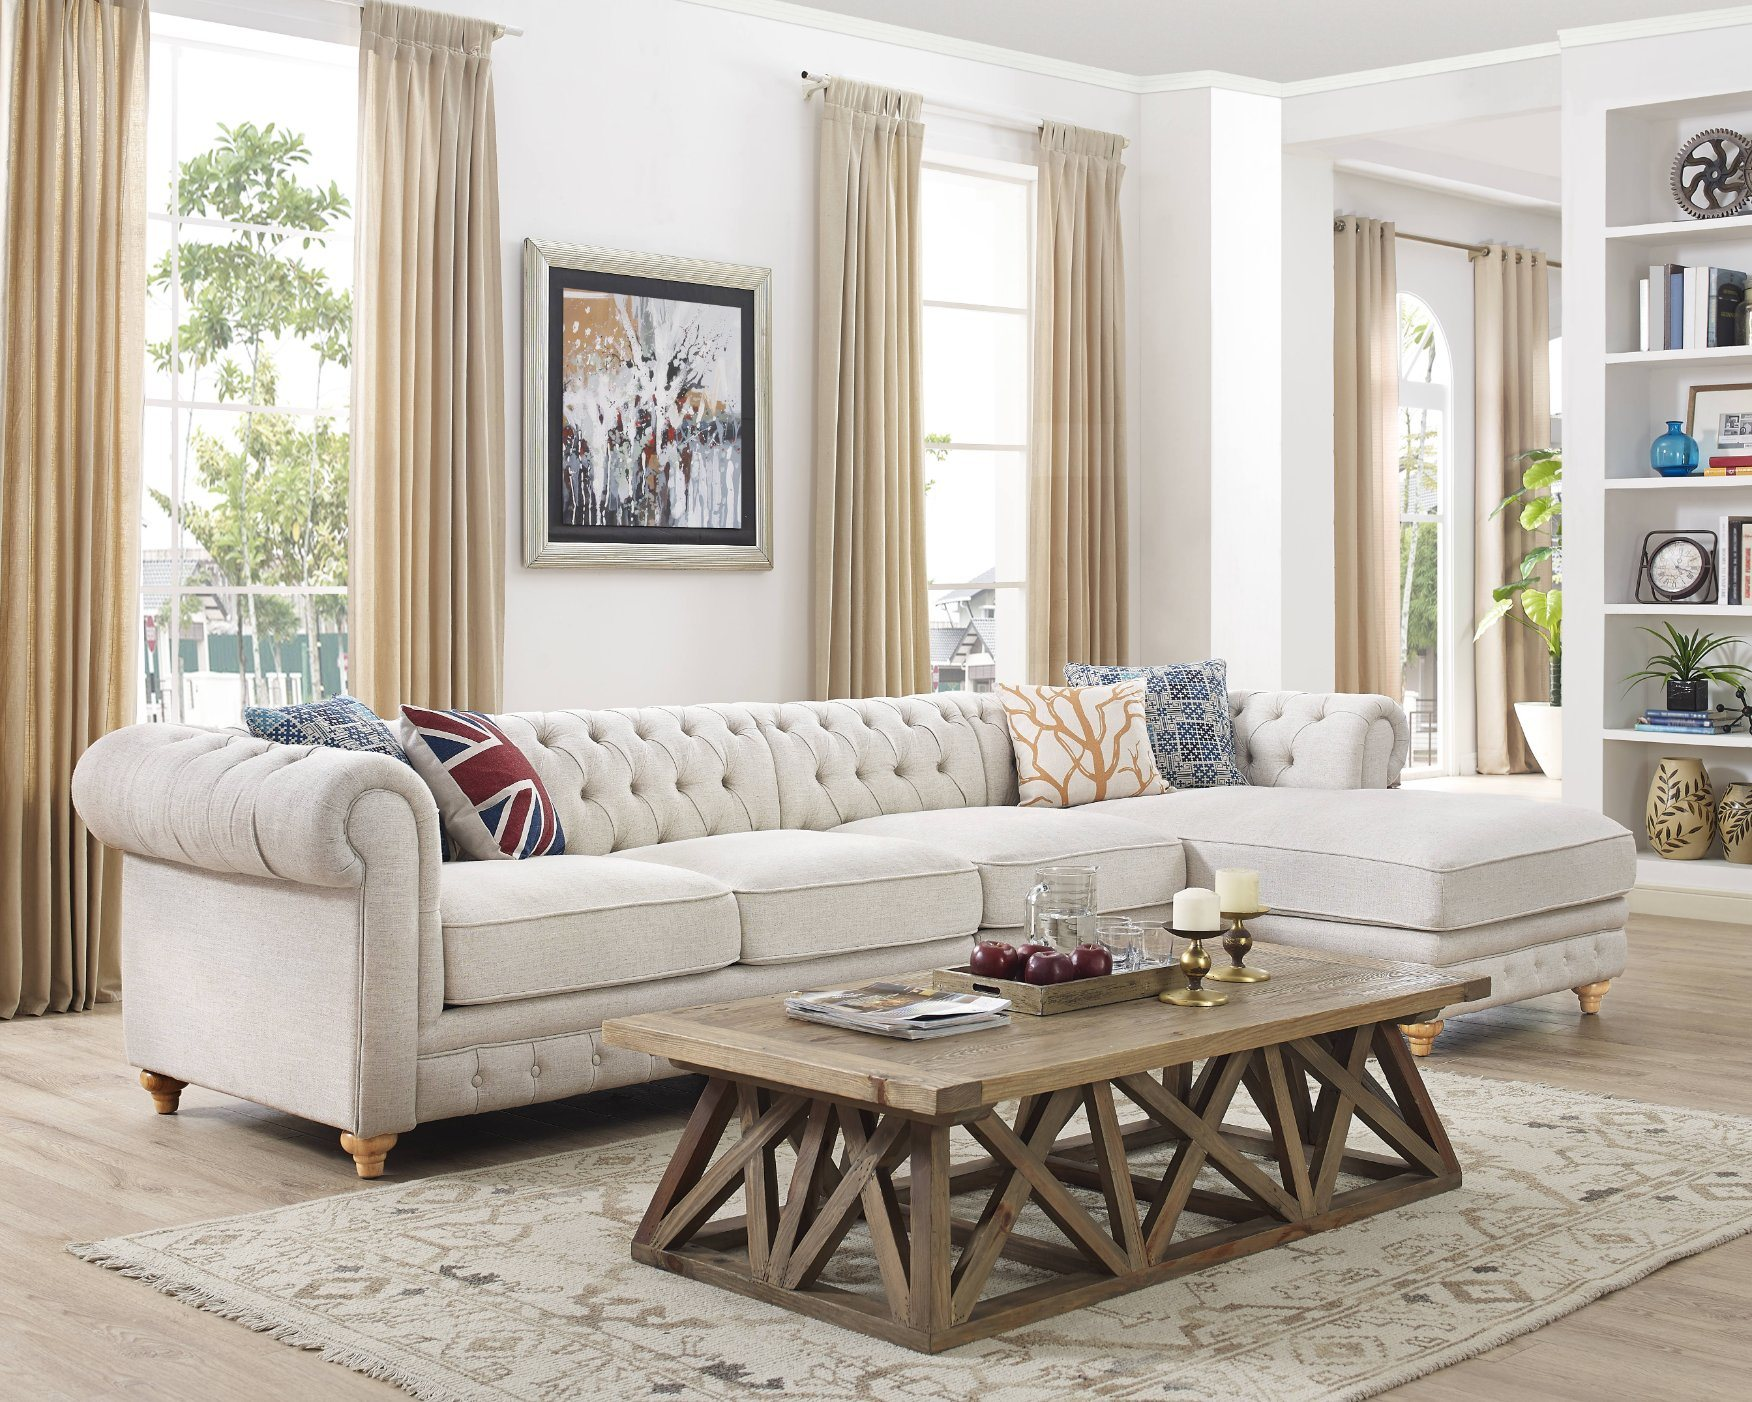 China Modern Living Room Wood Frame Genuine Bonded Leather Chesterfield Sofa China Tufted Sofa Studio Couch